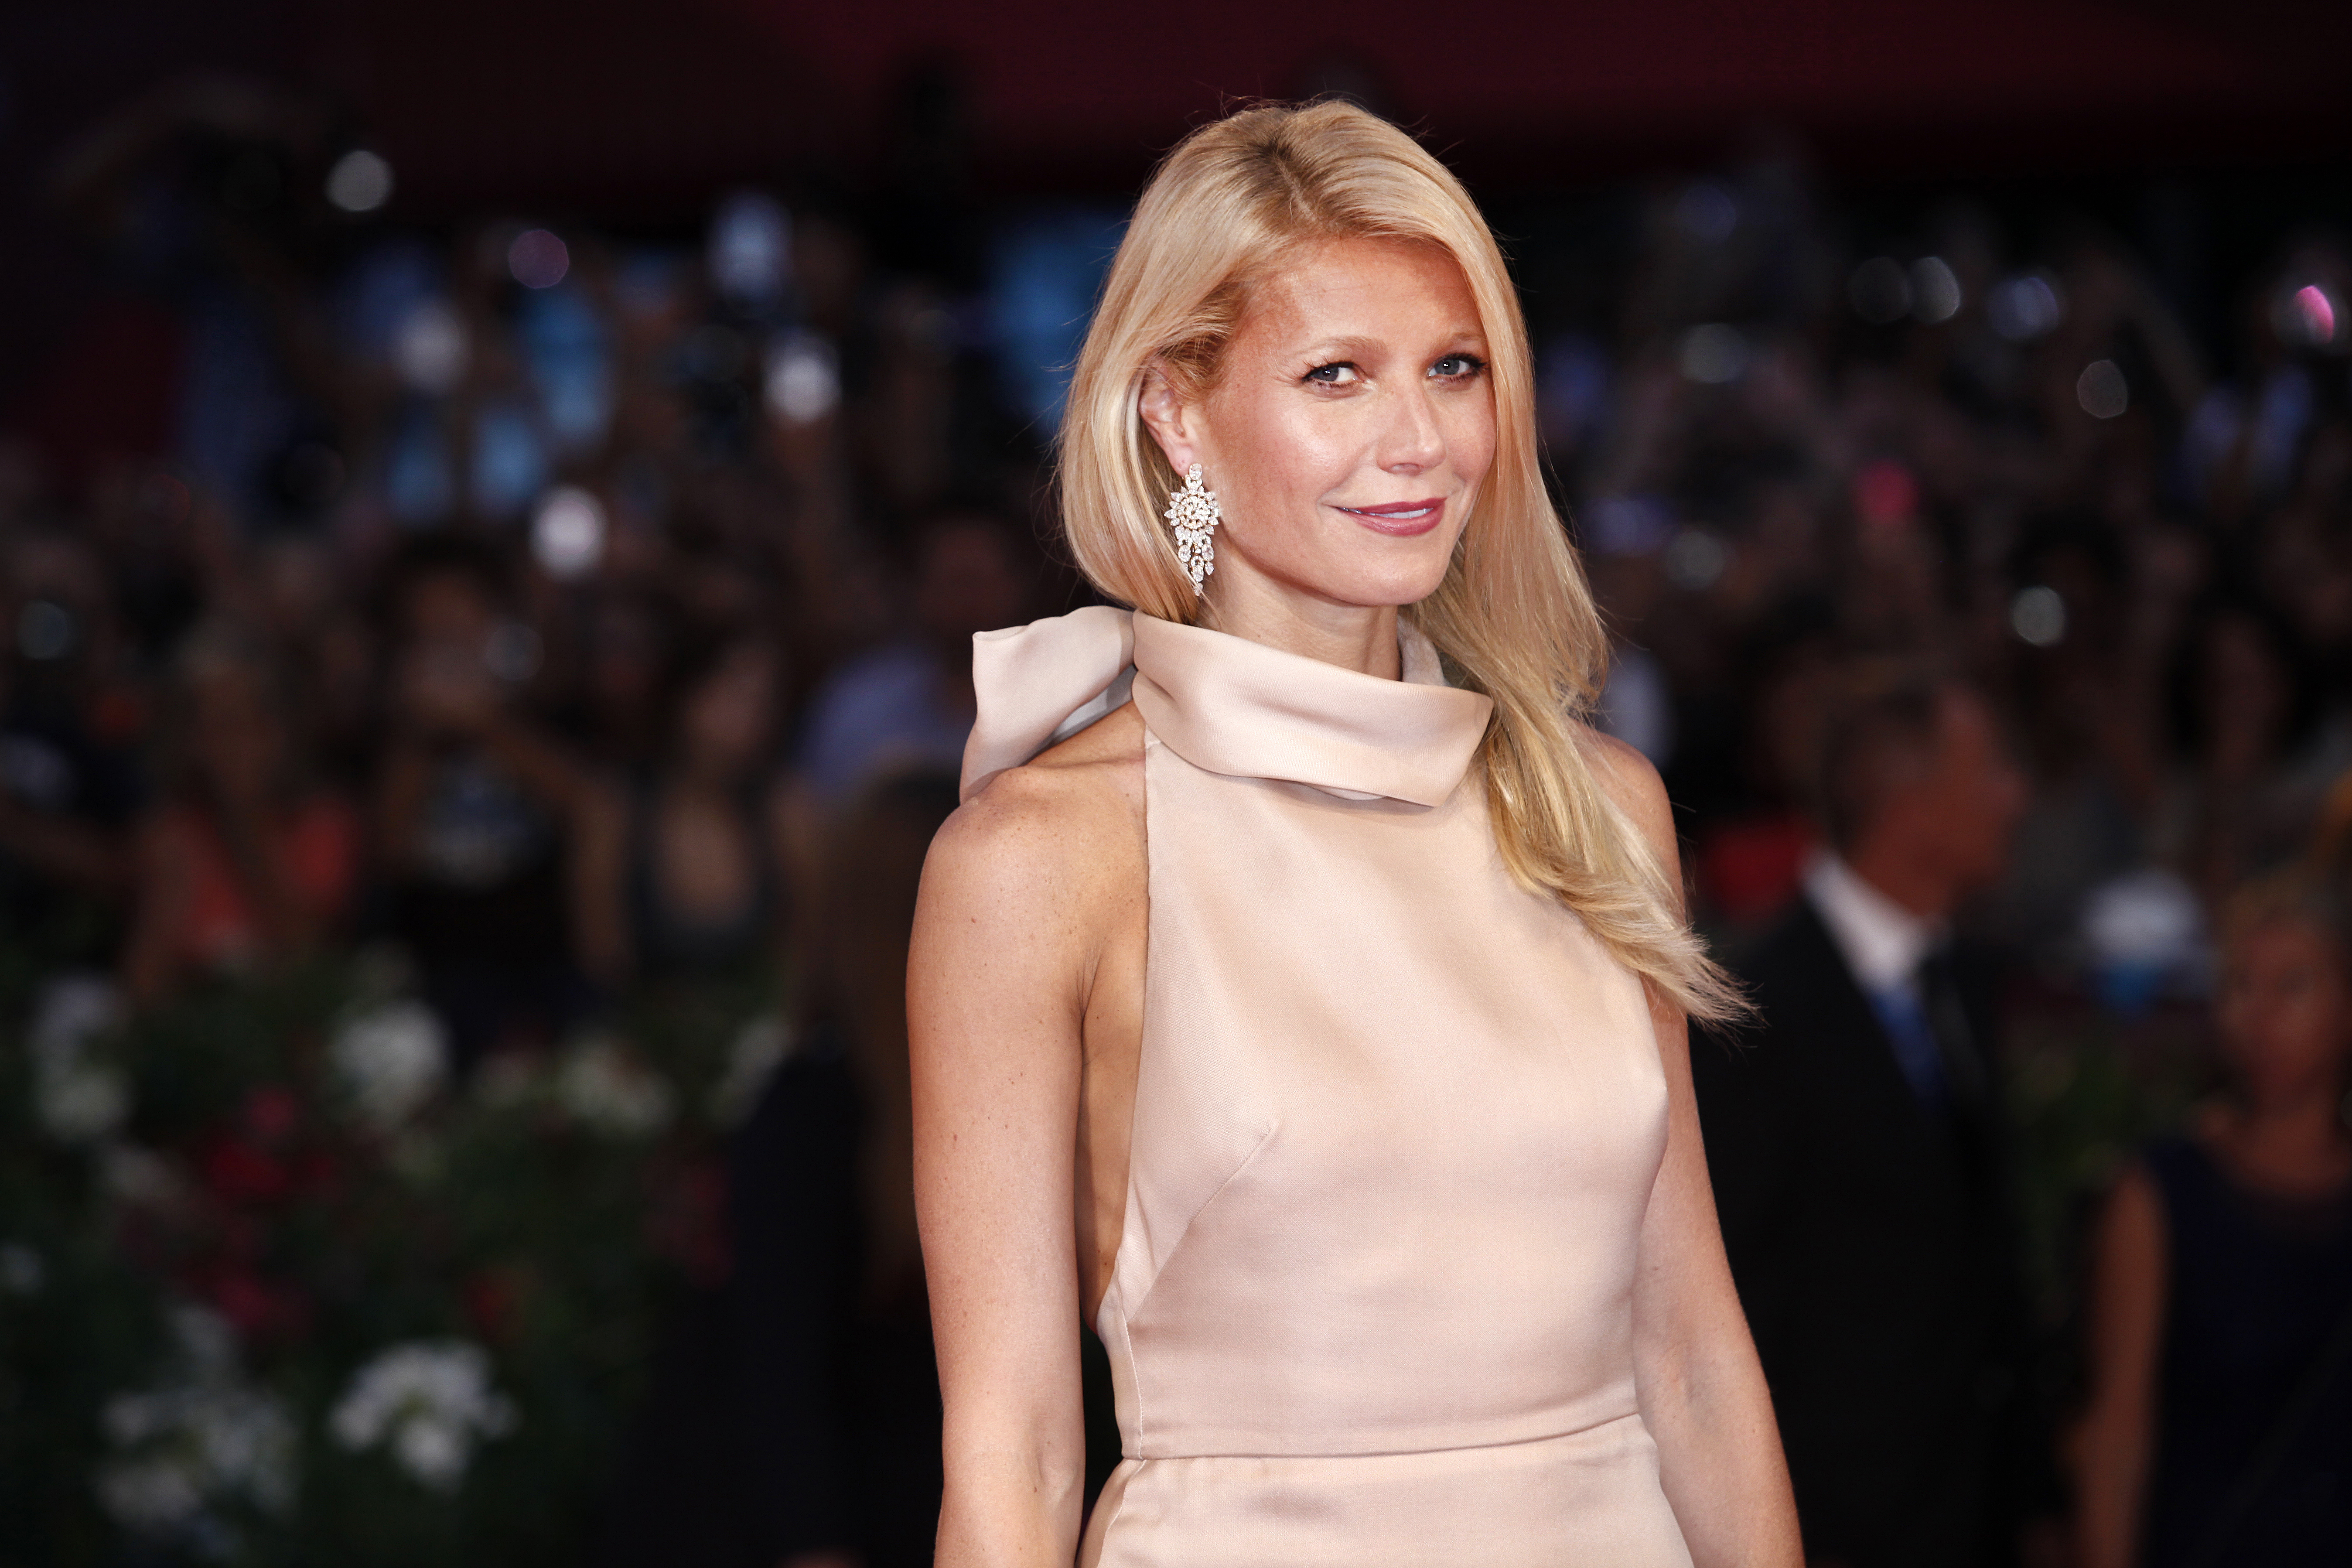 Gwyneth Paltrow's Guide To Anal Sex Is Just As Ridiculous As I Hoped It Would Be